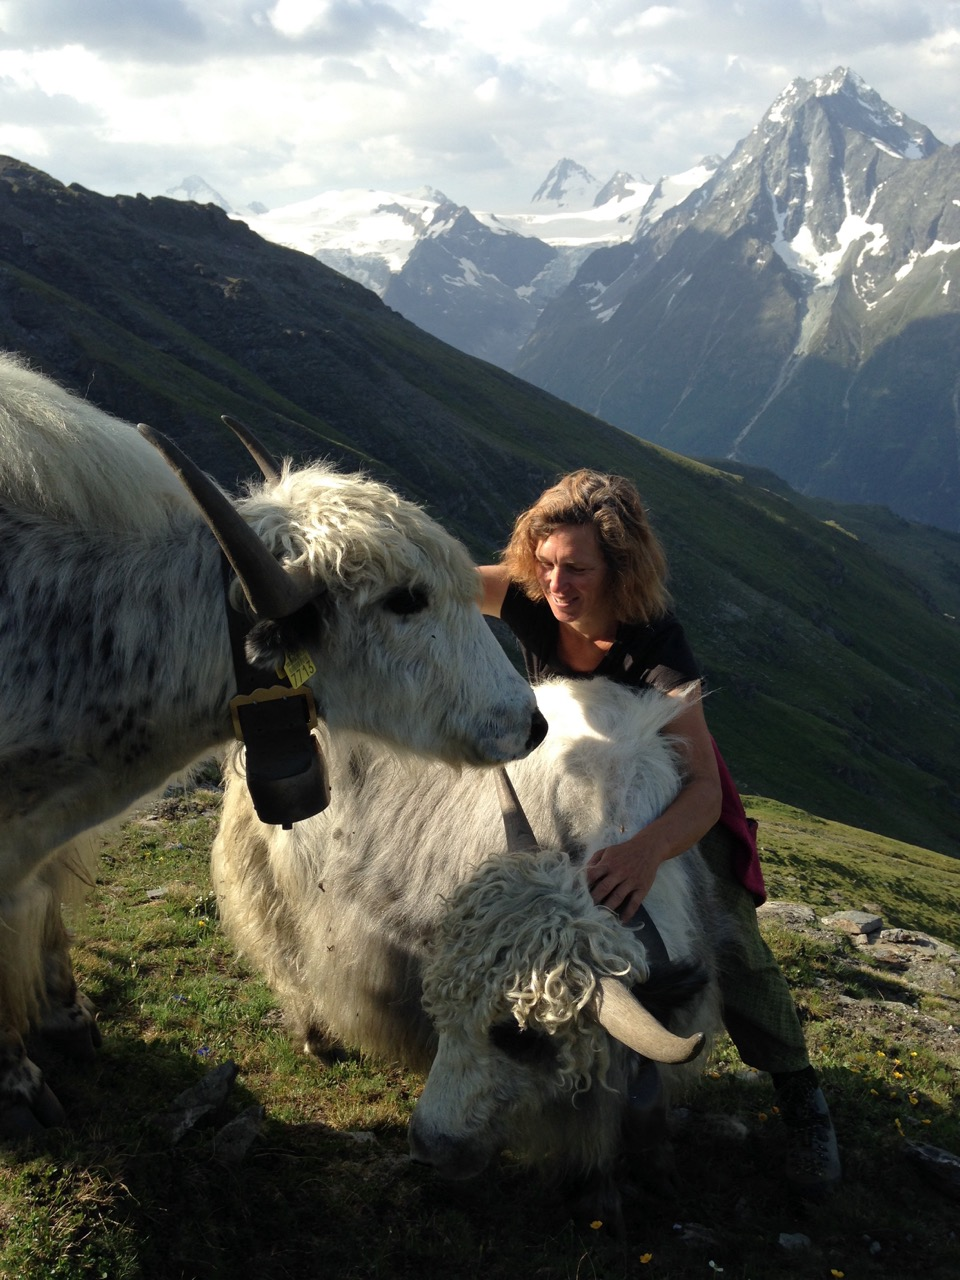 103-Switzerland-2-Rosula-with-her-yaks-Switzerland-July-2015-copy.jpg